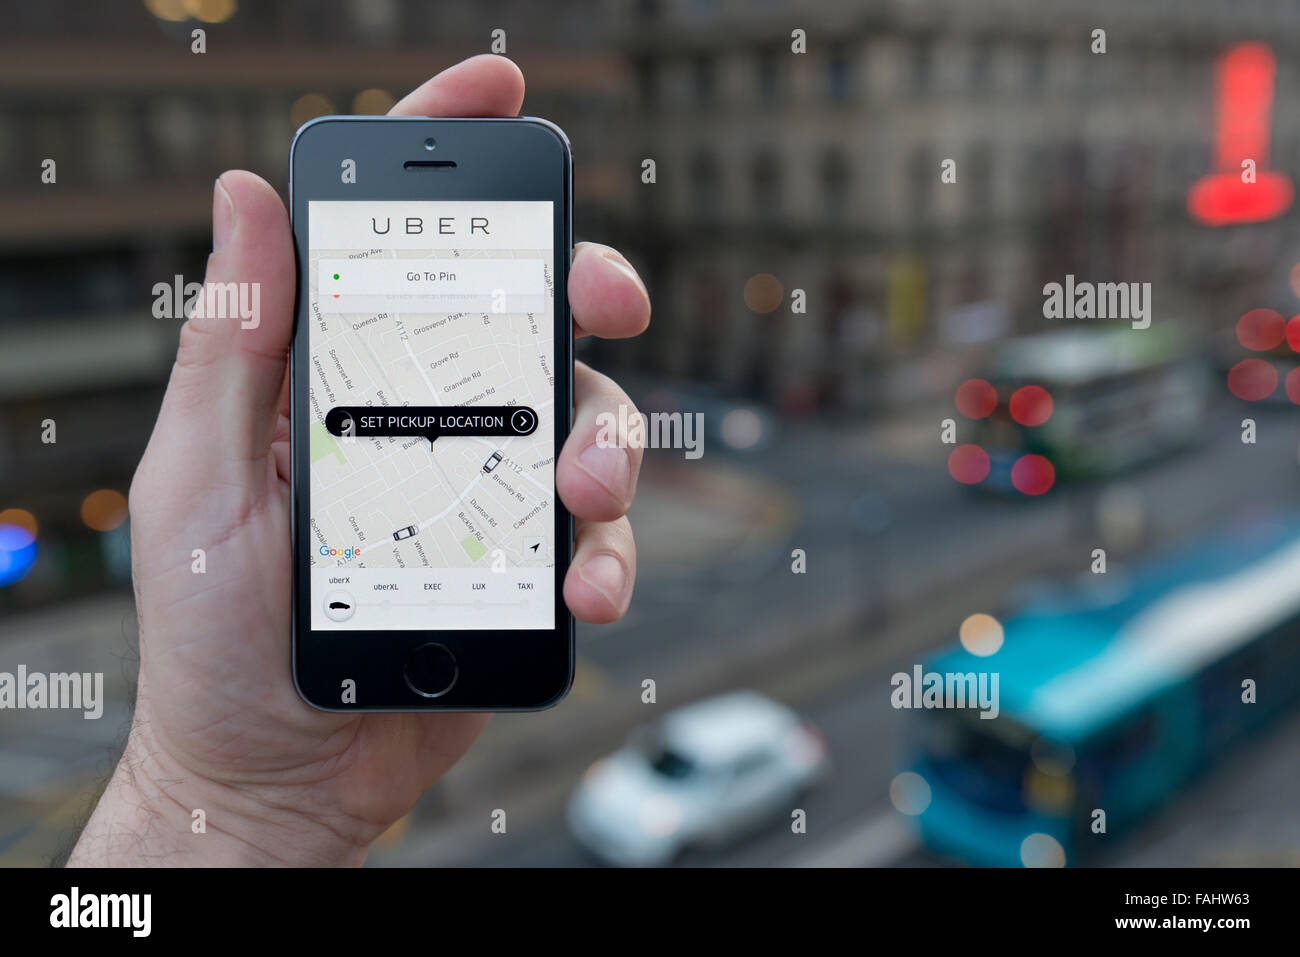 A man uses the Uber taxi smartphone app while stood in a tall building overlooking a busy city street (Editorial - Stock Image